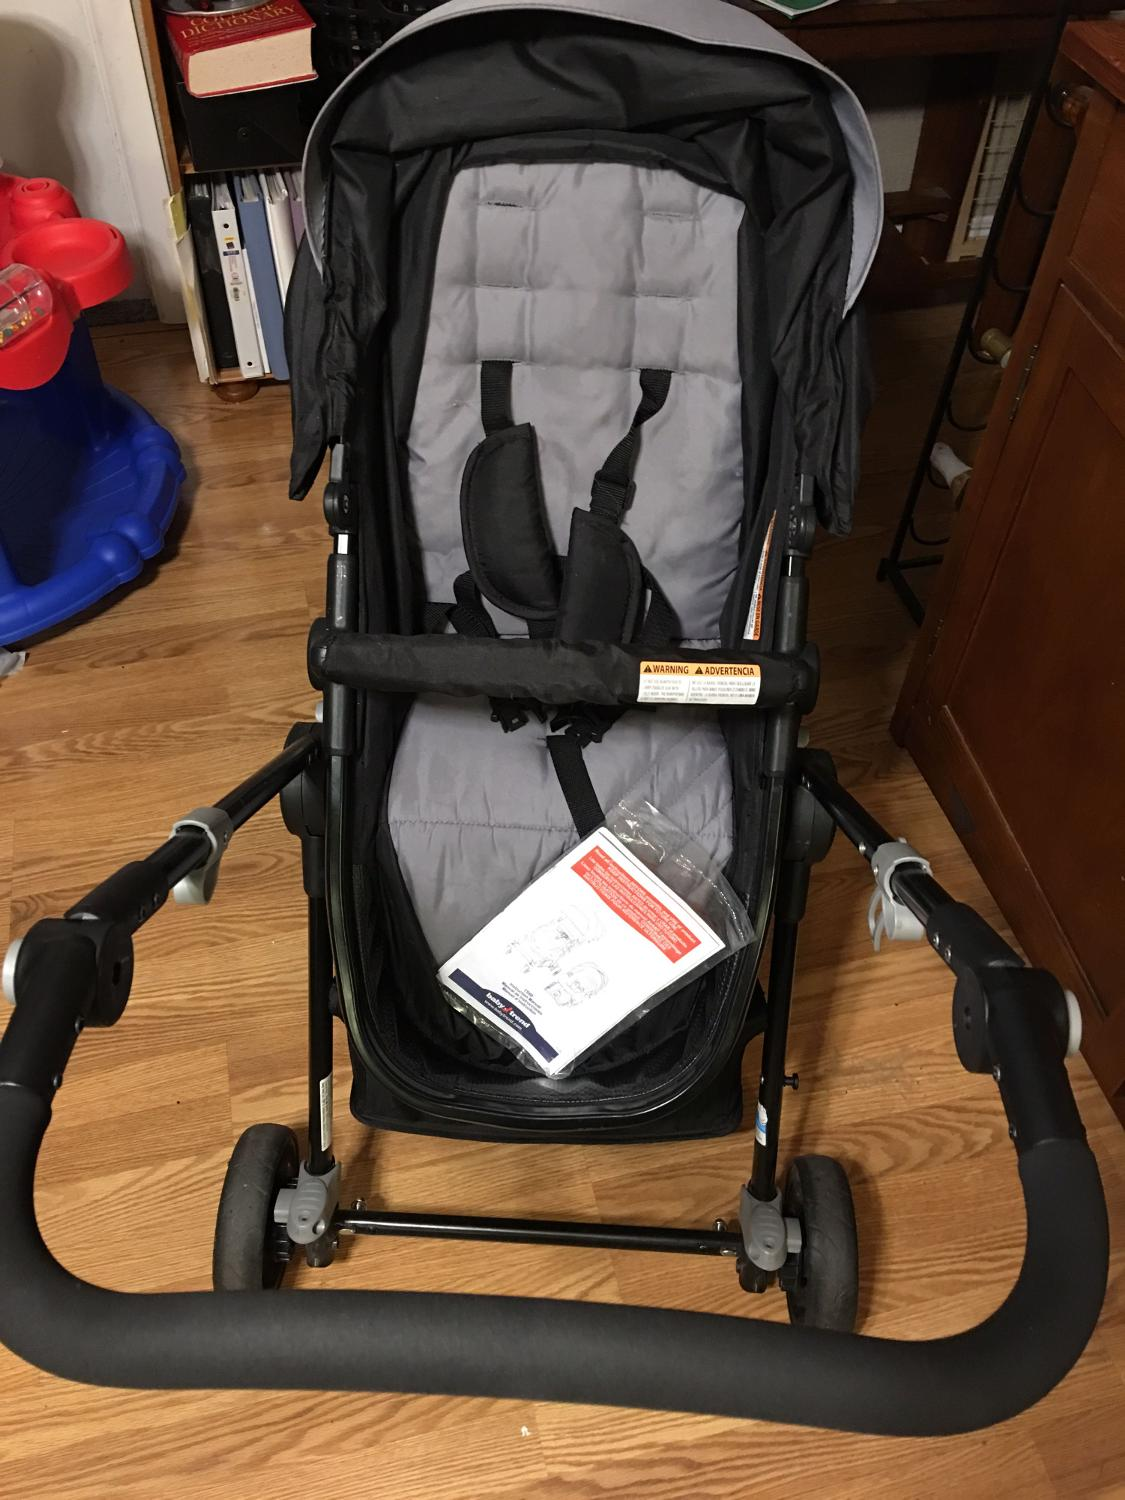 find more babytrend stroller and car seat combo for sale at up to 90 off maple valley wa. Black Bedroom Furniture Sets. Home Design Ideas